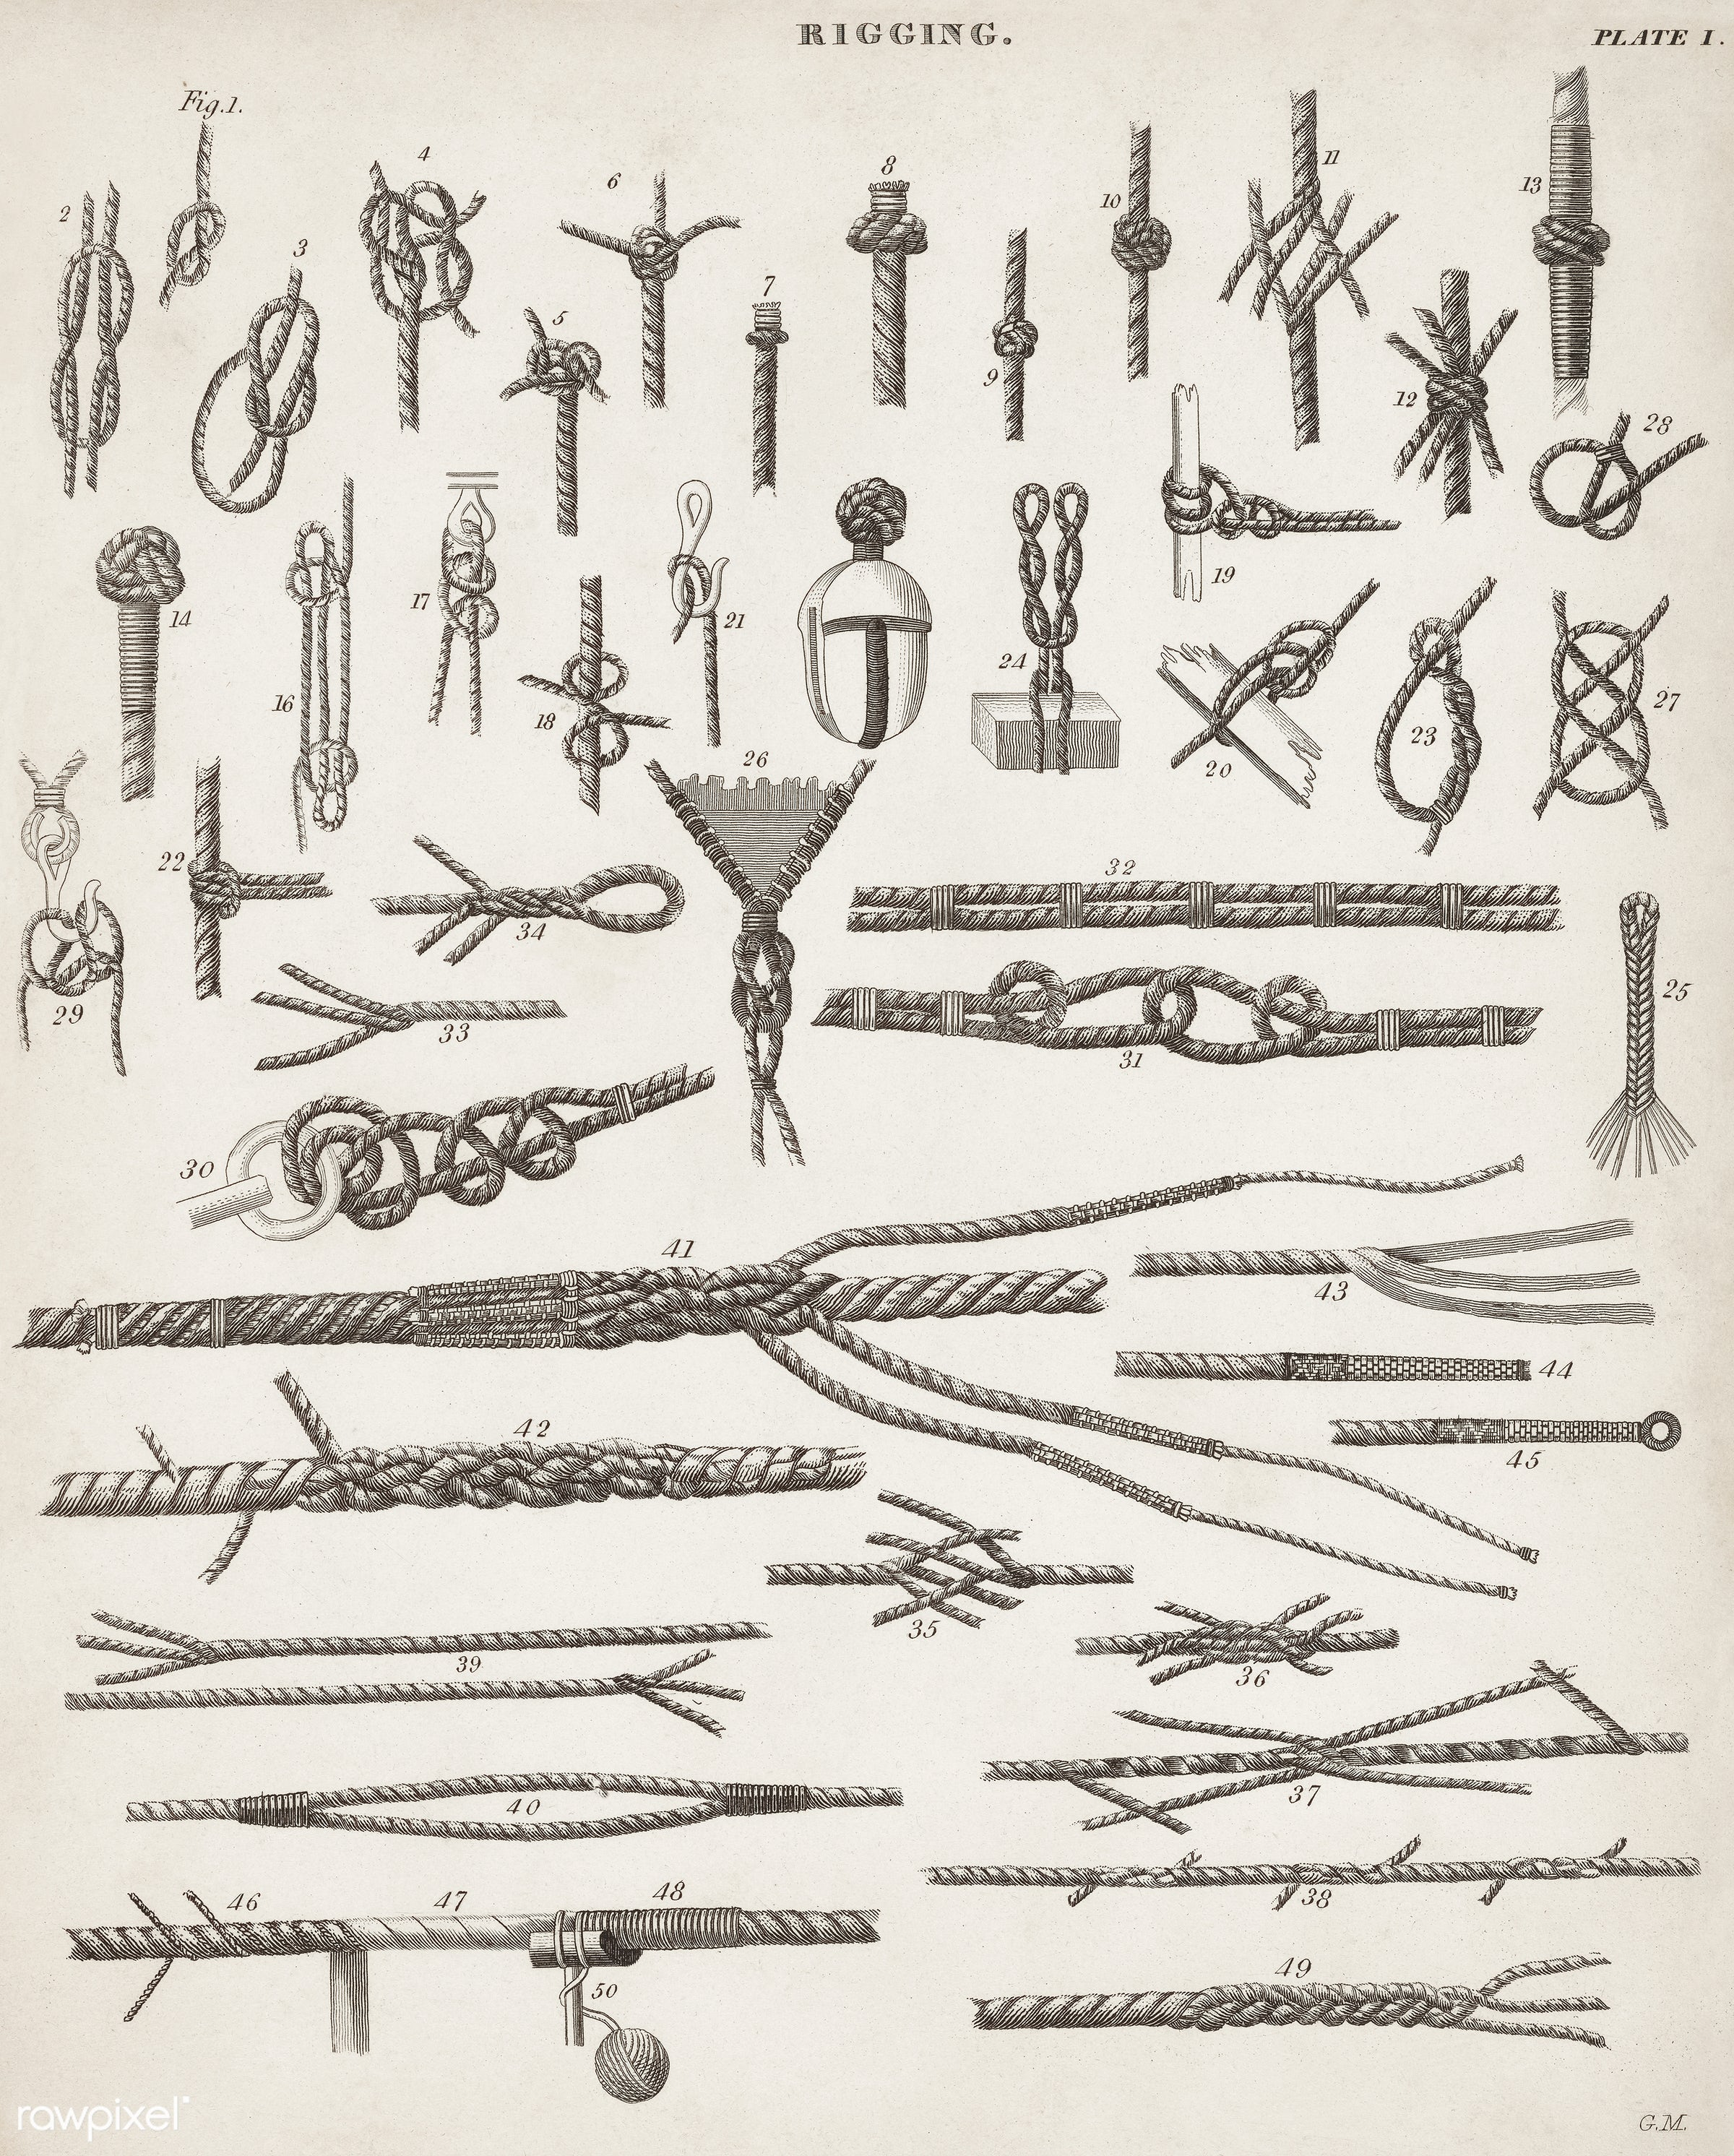 Vintage Illustration of different types of knots published in 1810-1842.  - antique, artwork, cc0, collection, creative...